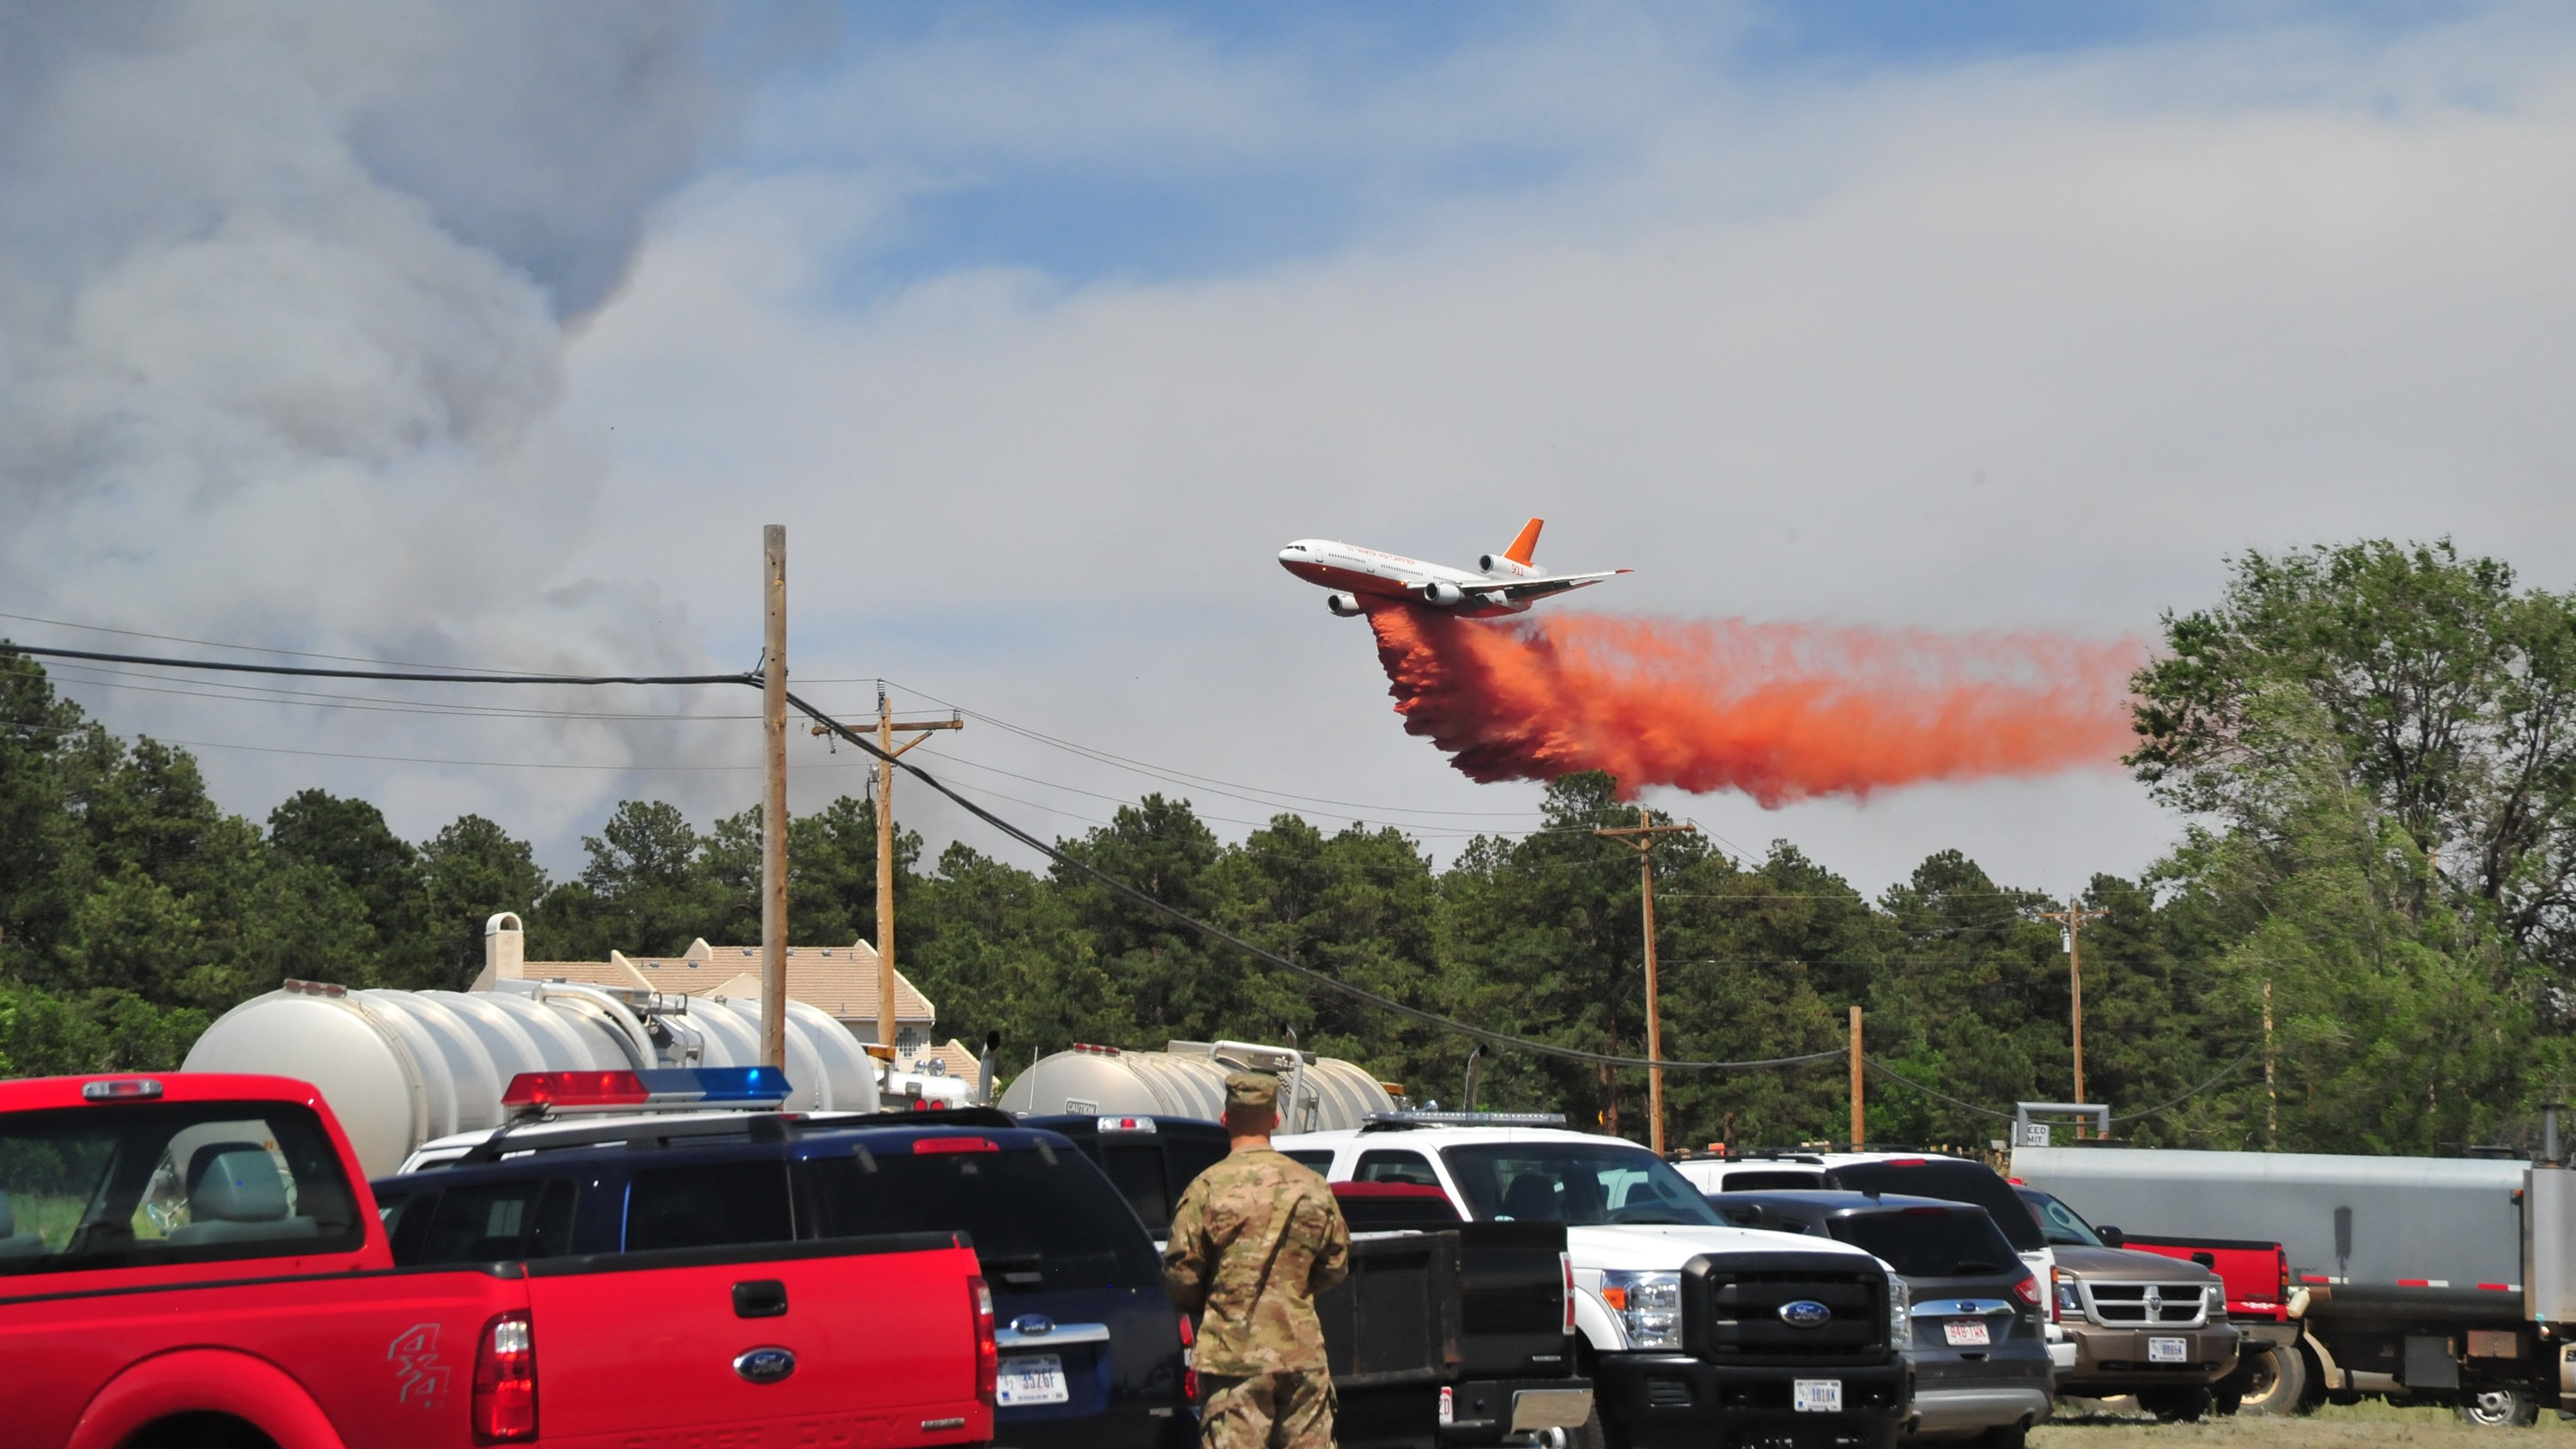 This Big Ol' Passenger Plane Is Perfect at Fighting Wildfires